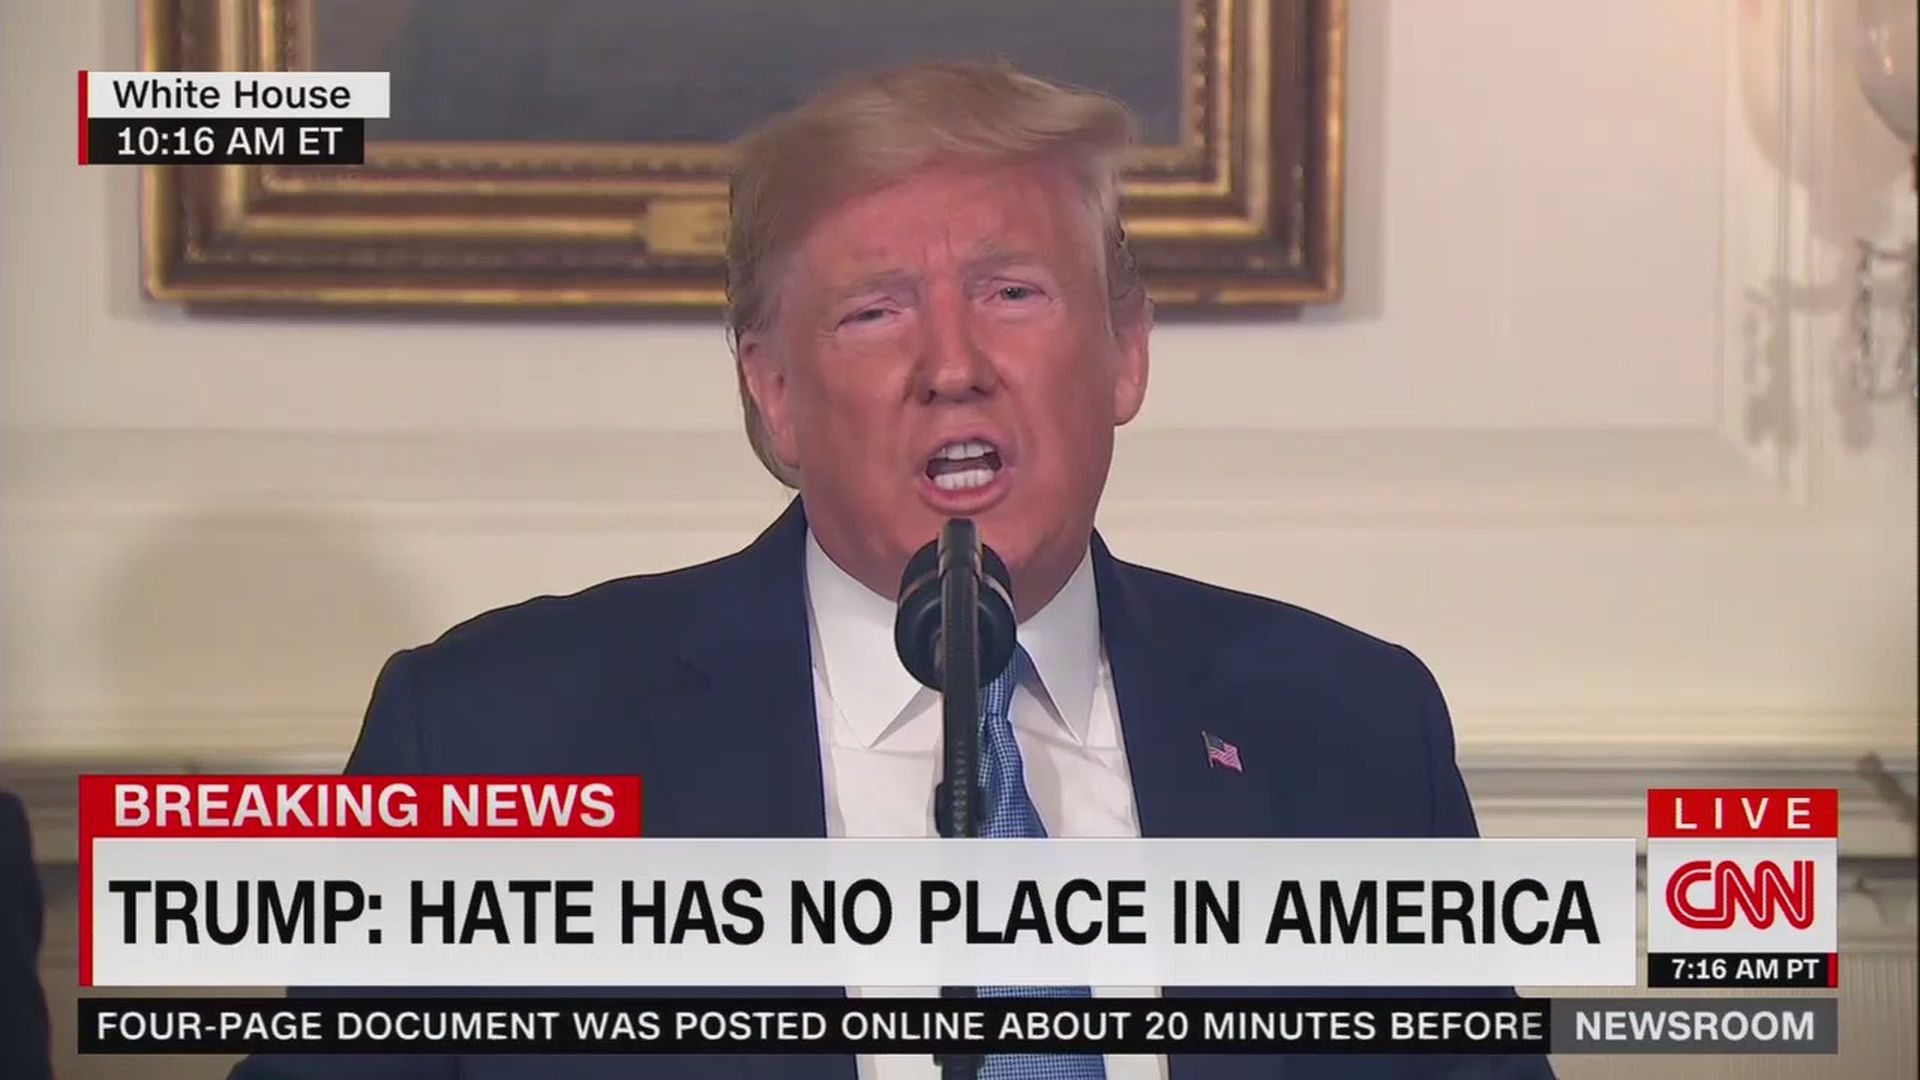 Hate has no place in America